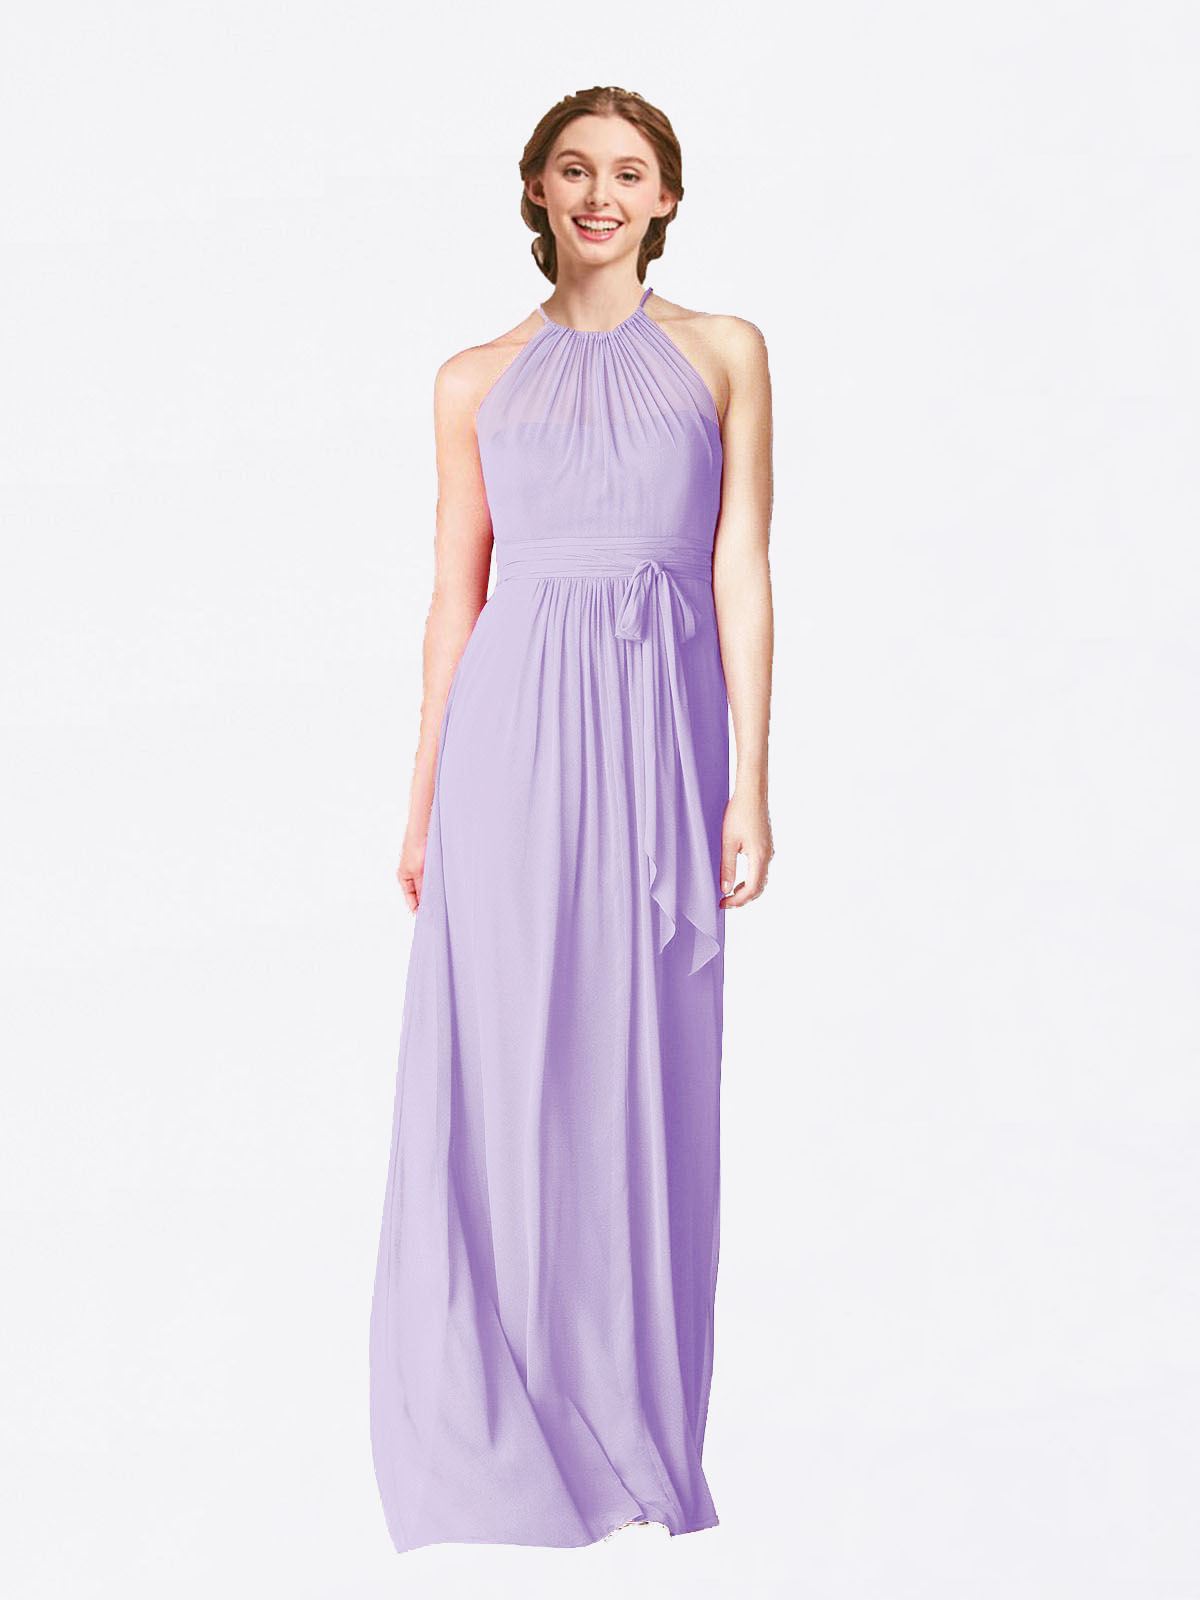 Long A-Line Halter Sleeveless Lilac Chiffon Bridesmaid Dress Laura